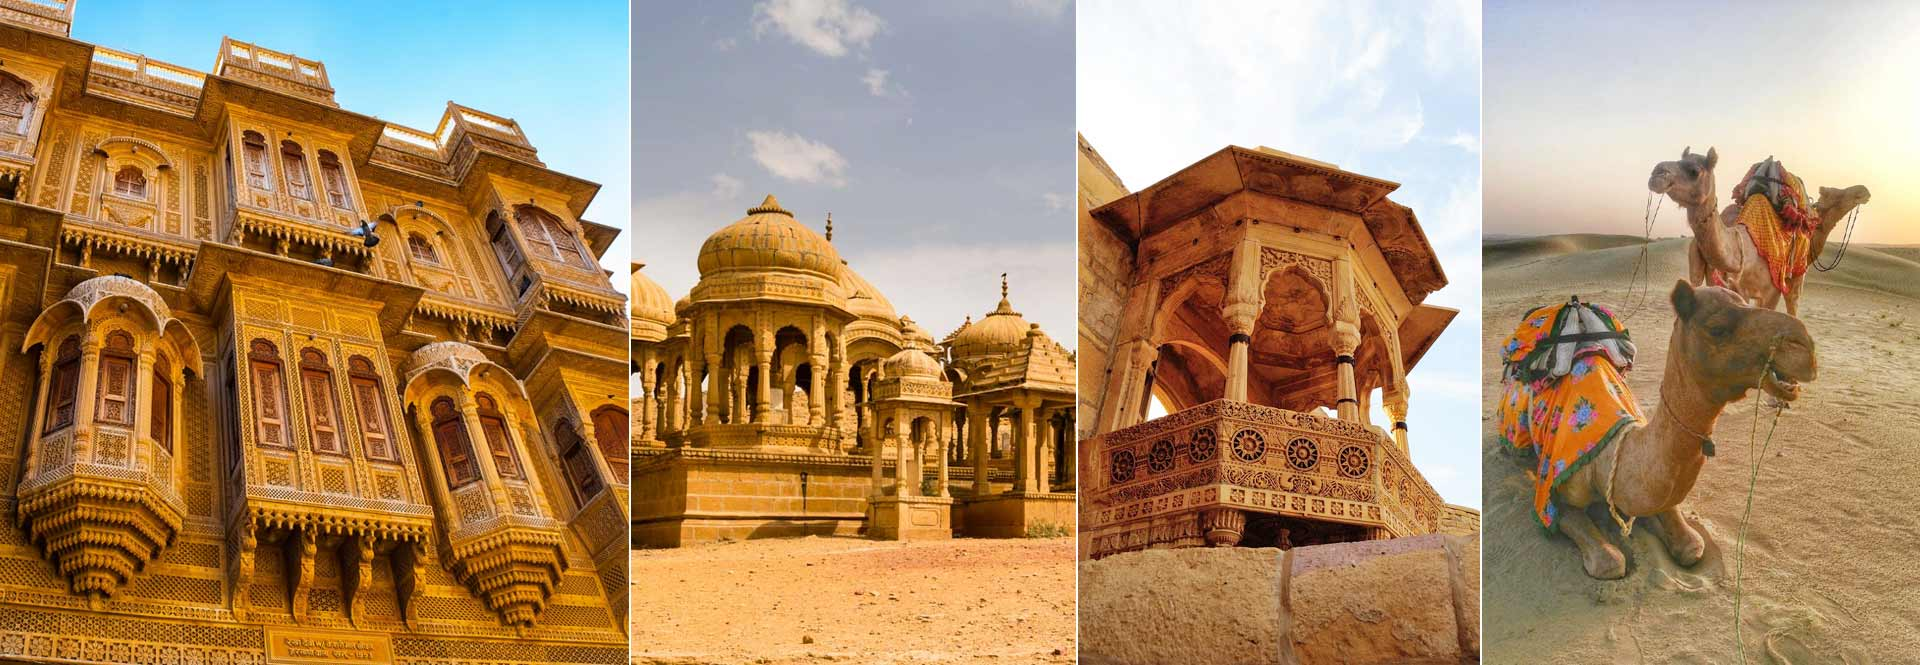 Jaisalmer Safari